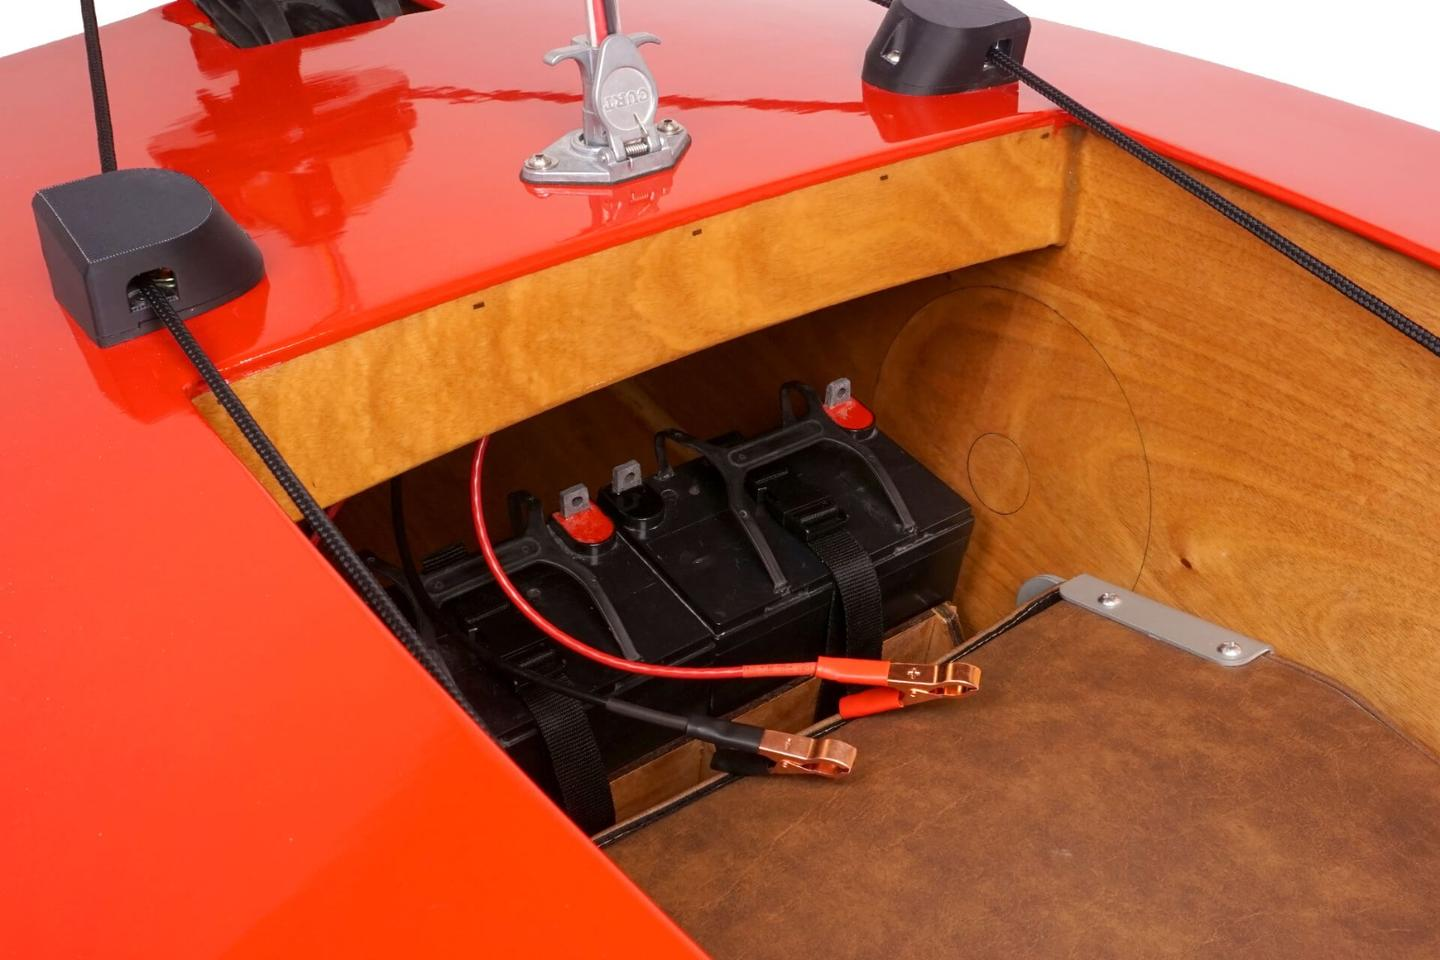 The Mini Boat can take two SLA deep cycle batteries, which are strapped in behind the seat